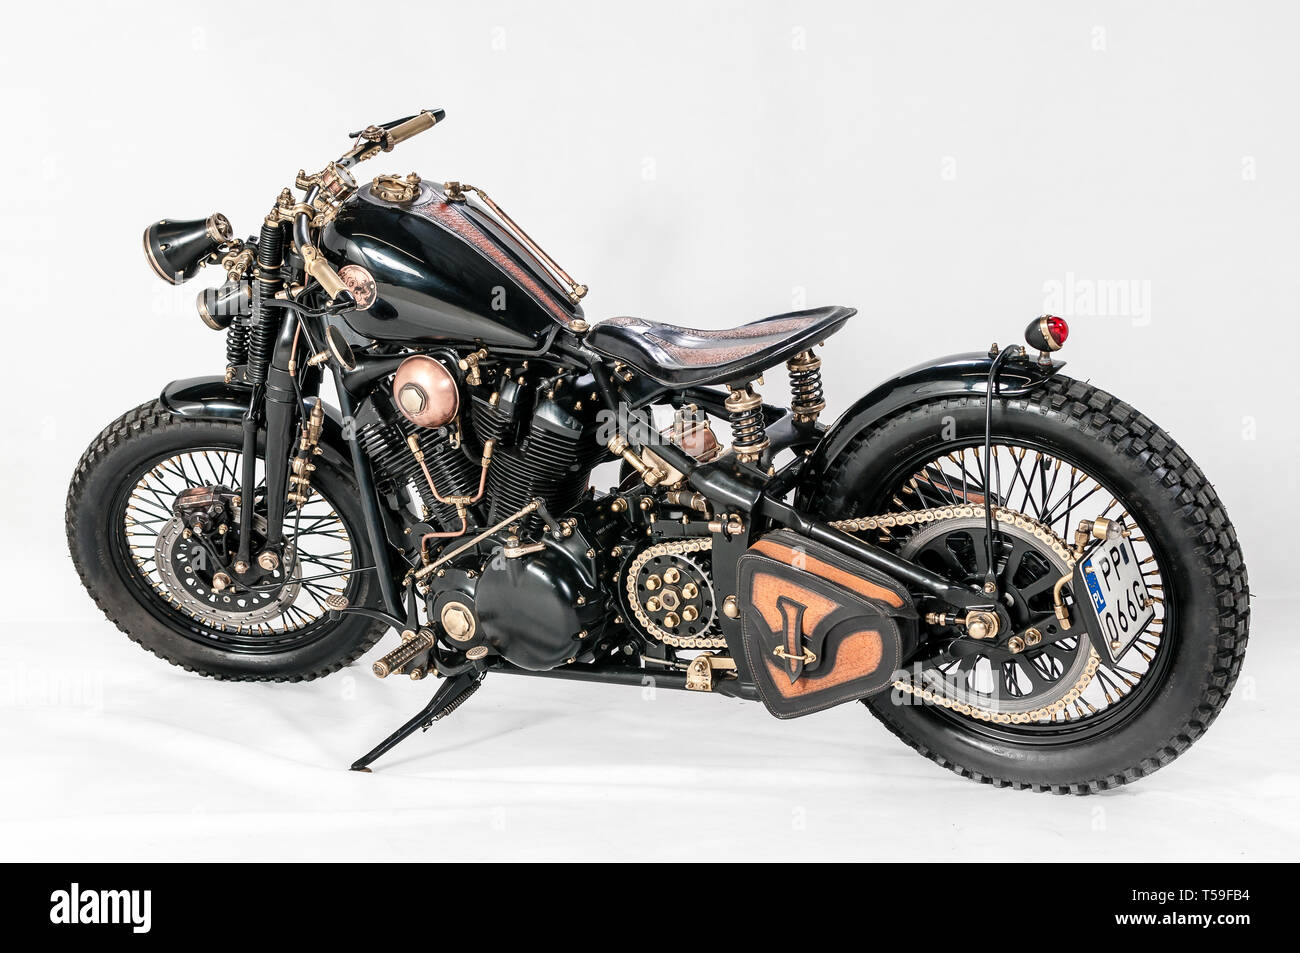 Warsaw Poland March 01 2019 Warsaw Custom Motorcycles Show Presentation Of Custom Designed In Motorcycles Cathegory Old School Stock Photo Alamy